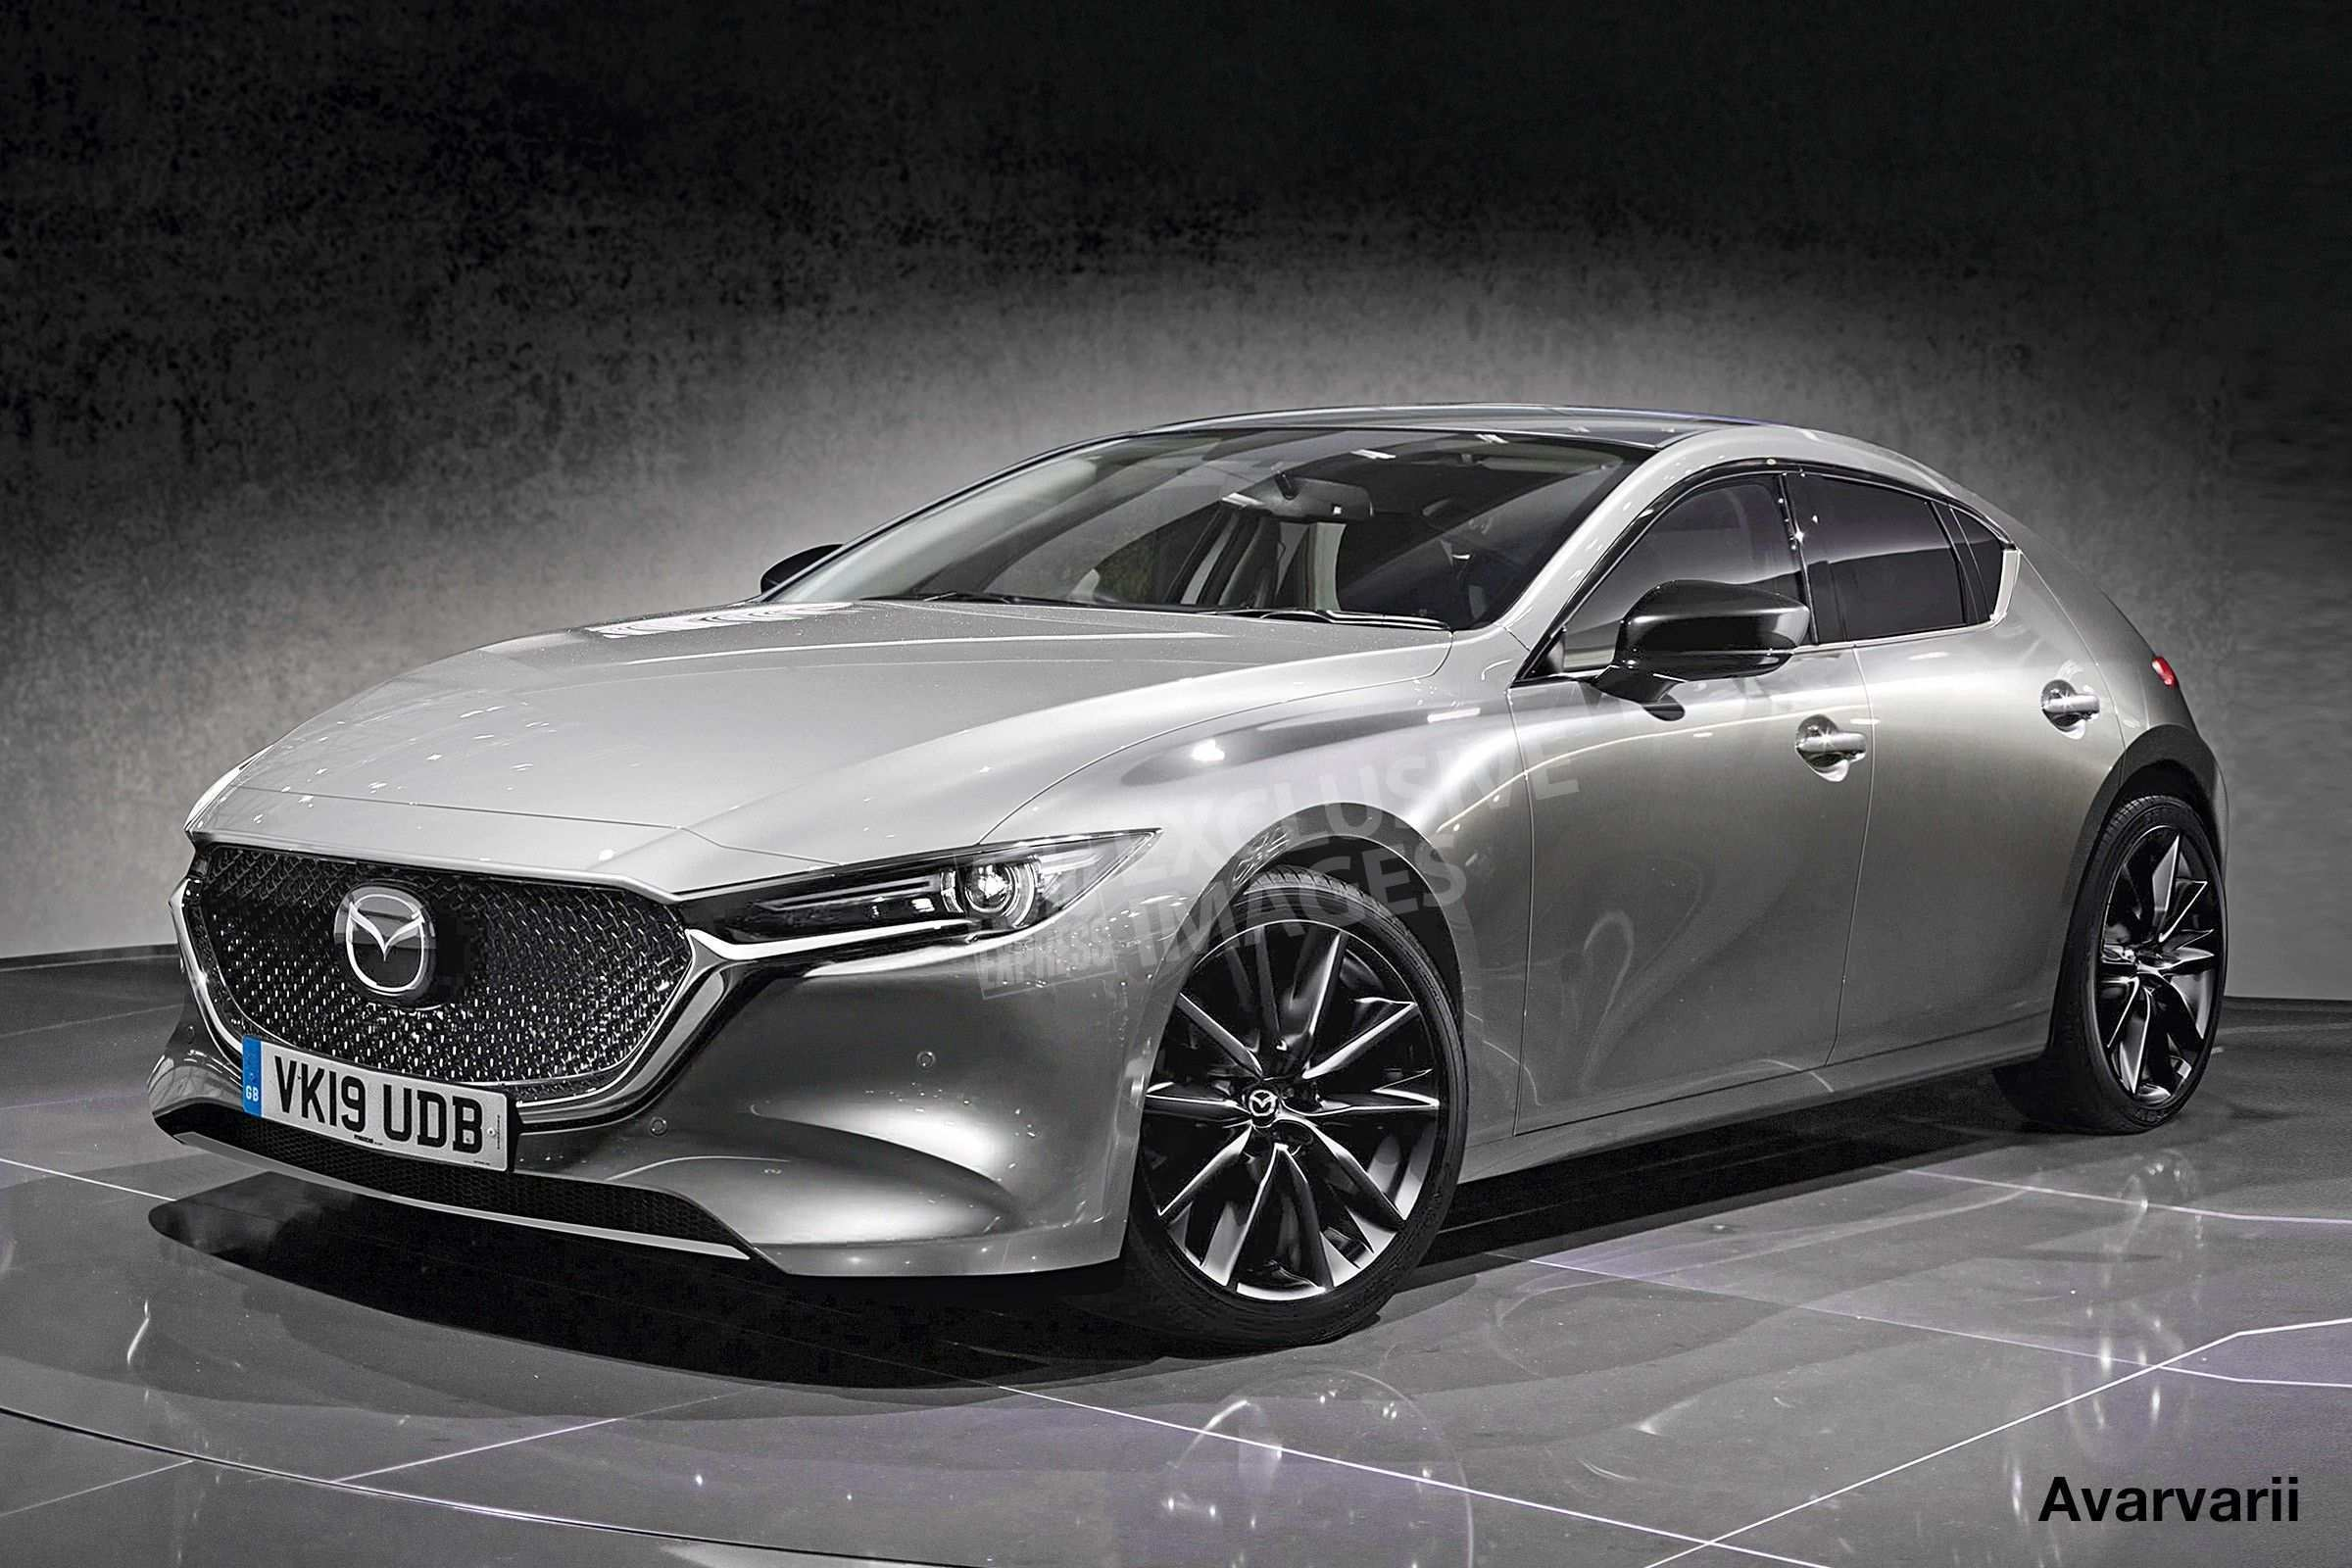 90 The New Mazda 6 2019 Uk Overview Redesign and Concept for New Mazda 6 2019 Uk Overview